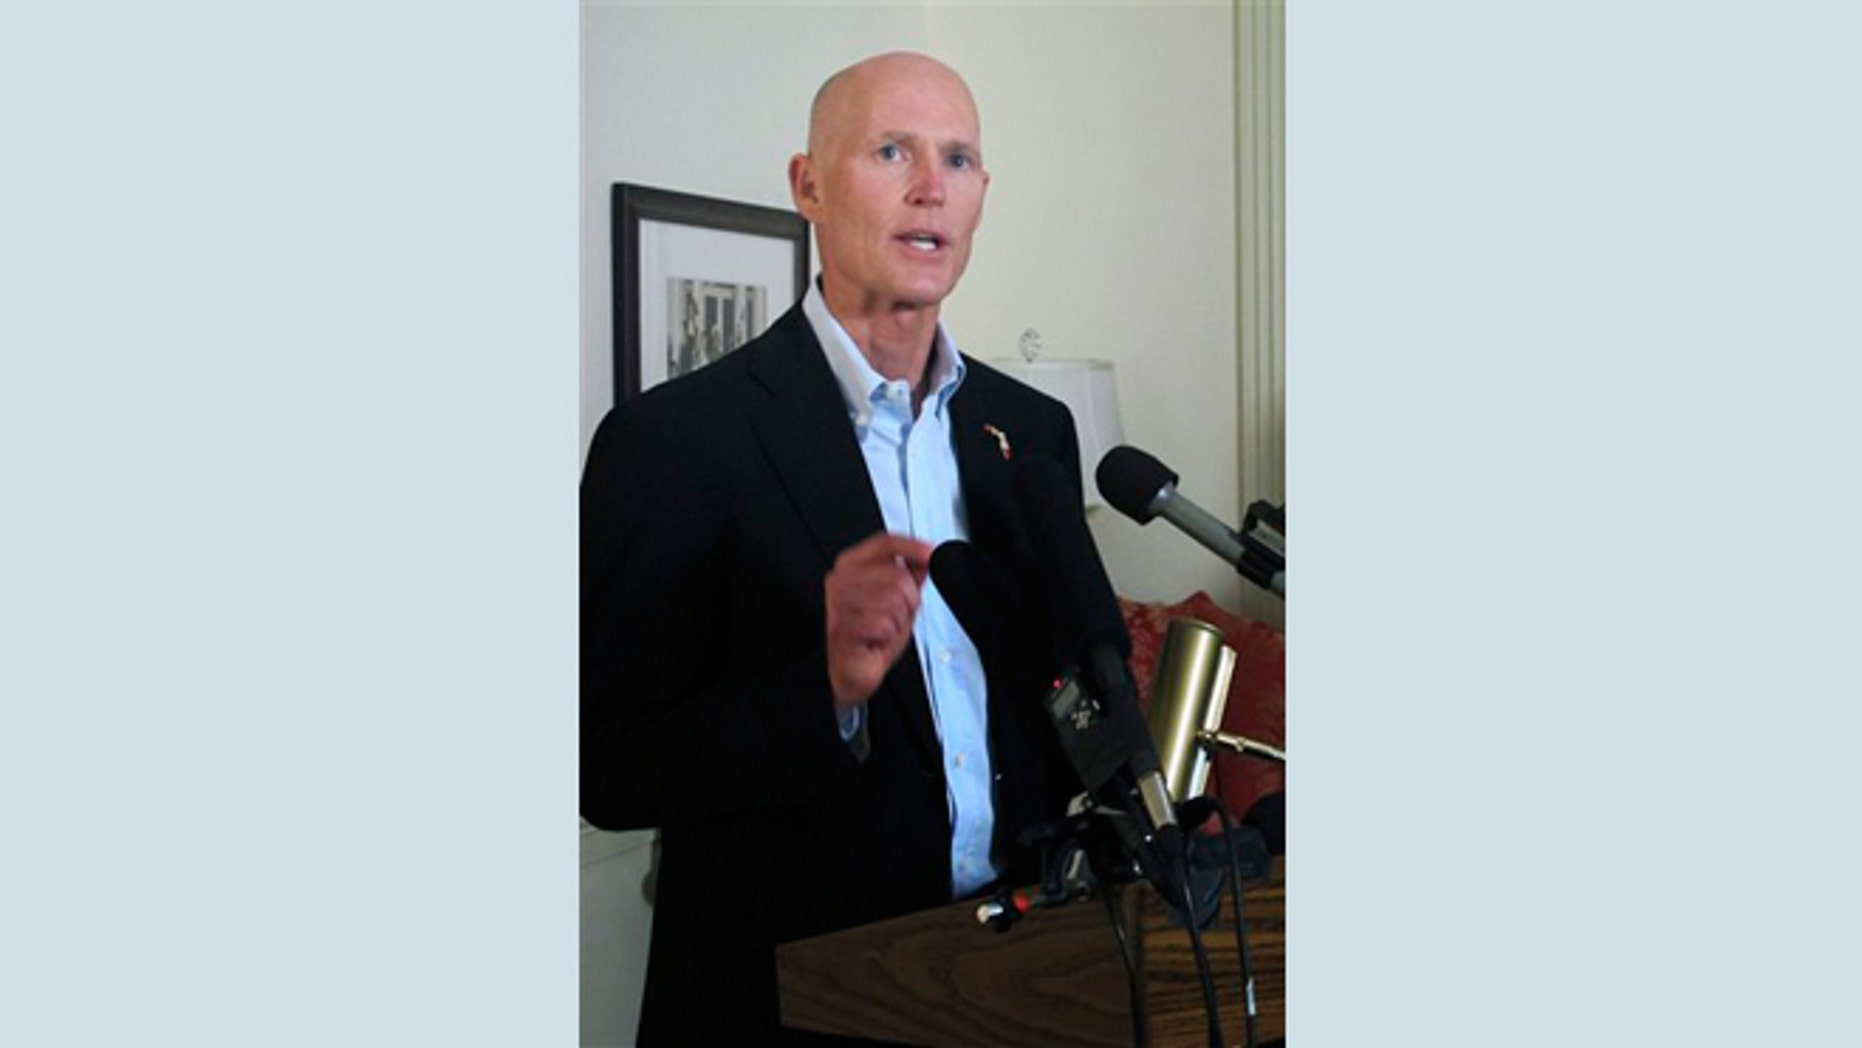 Feb. 20, 2013: Florida Gov. Rick Scott speaks during a press conference in Tallahassee, Fla.